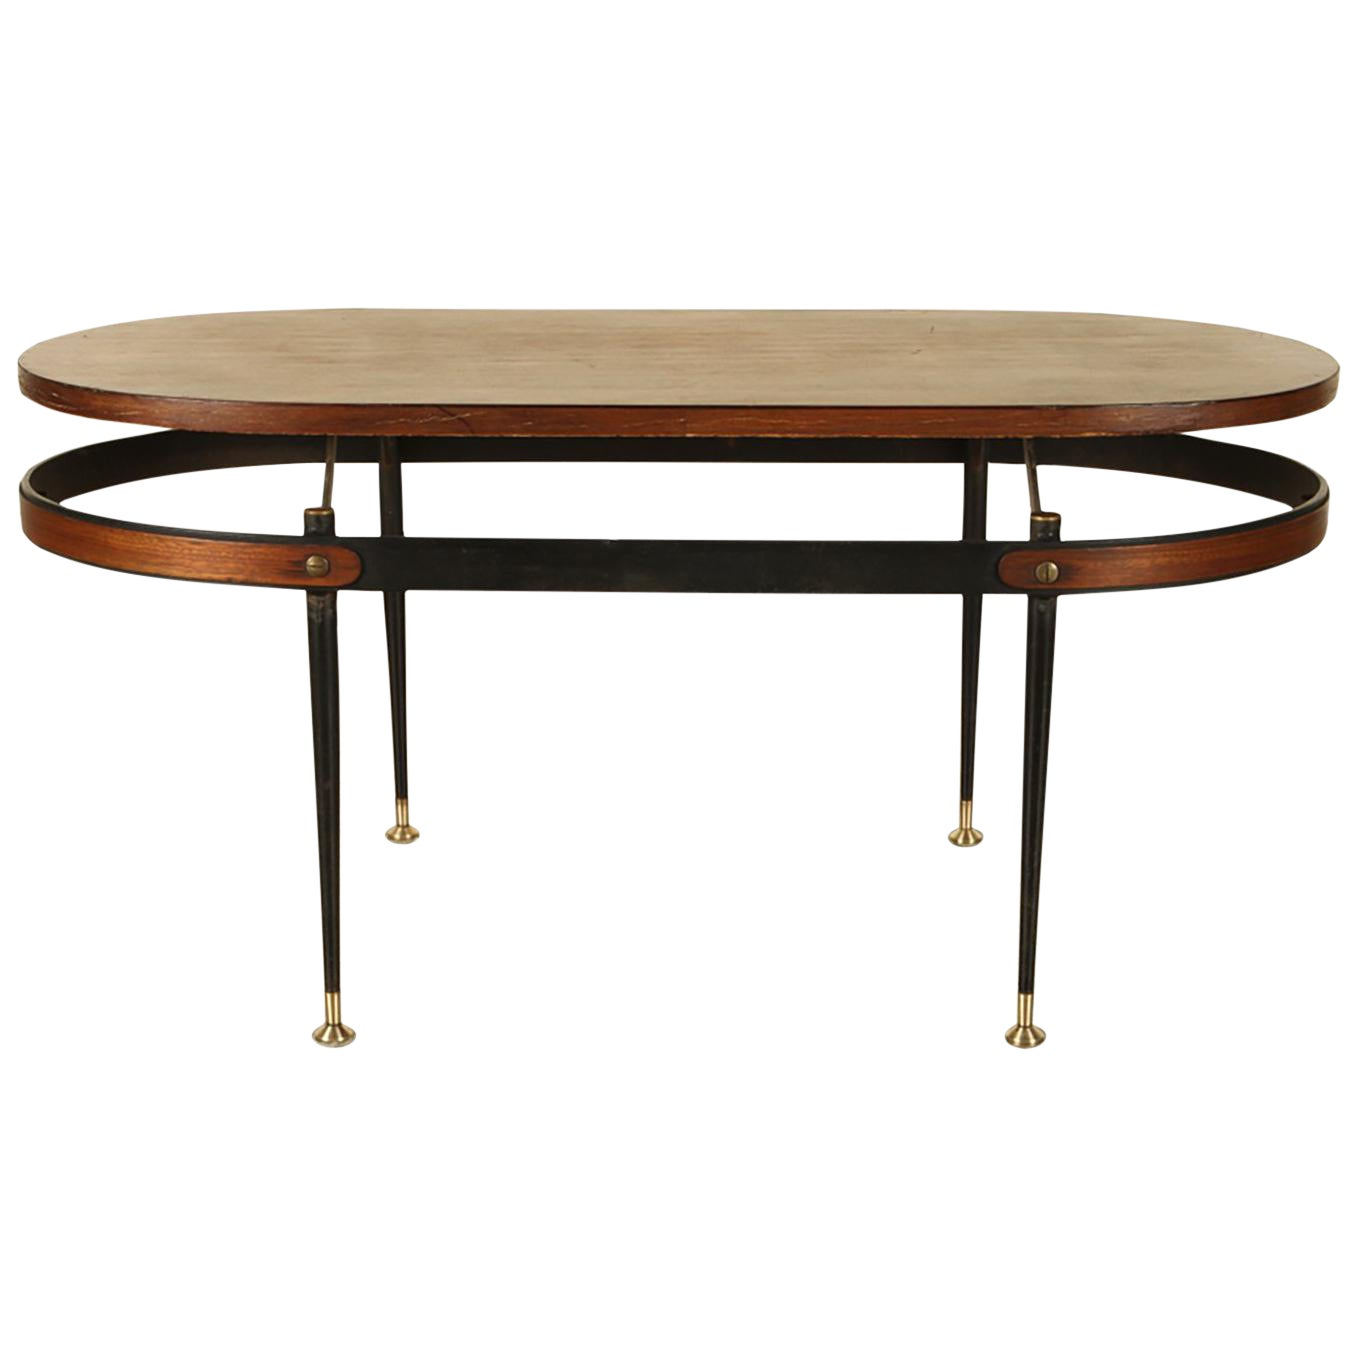 Coffee Table Pick Up Line.Sculptural Italian Iron And Wood Coffee Table